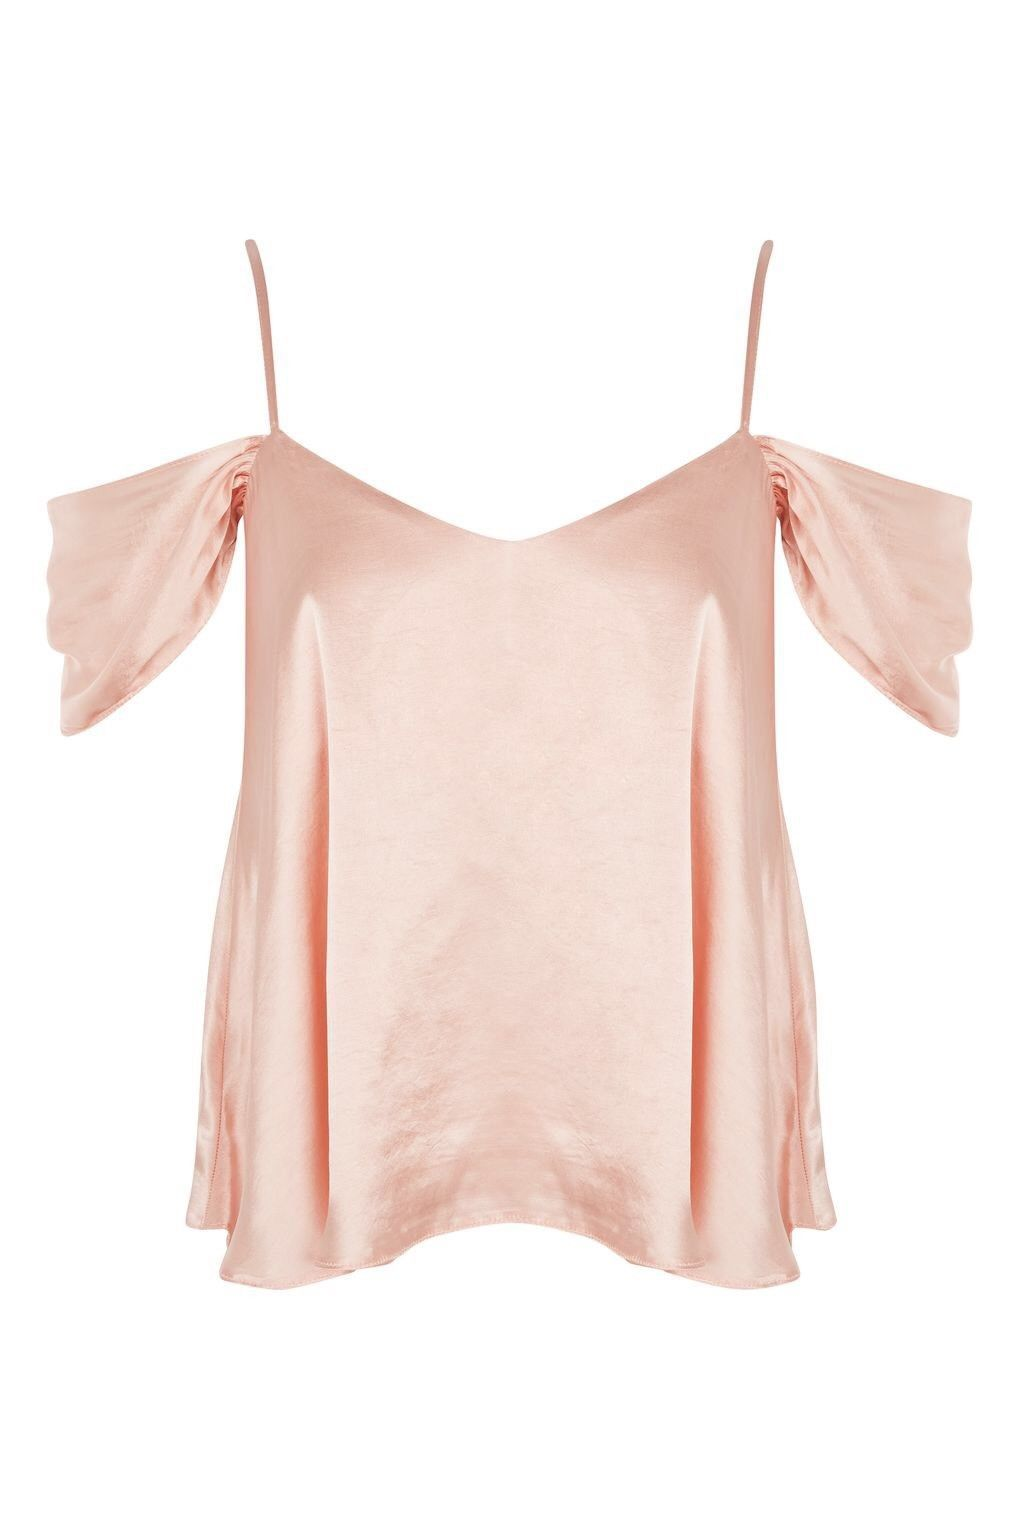 19edafe648 30.00 USD | Topshop Blush Pink Silky Satin Rouleau Cold Shoulder Camisole  Top Sz 4 | #Leggings #womens #Over50FiftyNotFrumpy #ASOS #Korean #women  #Collage ...